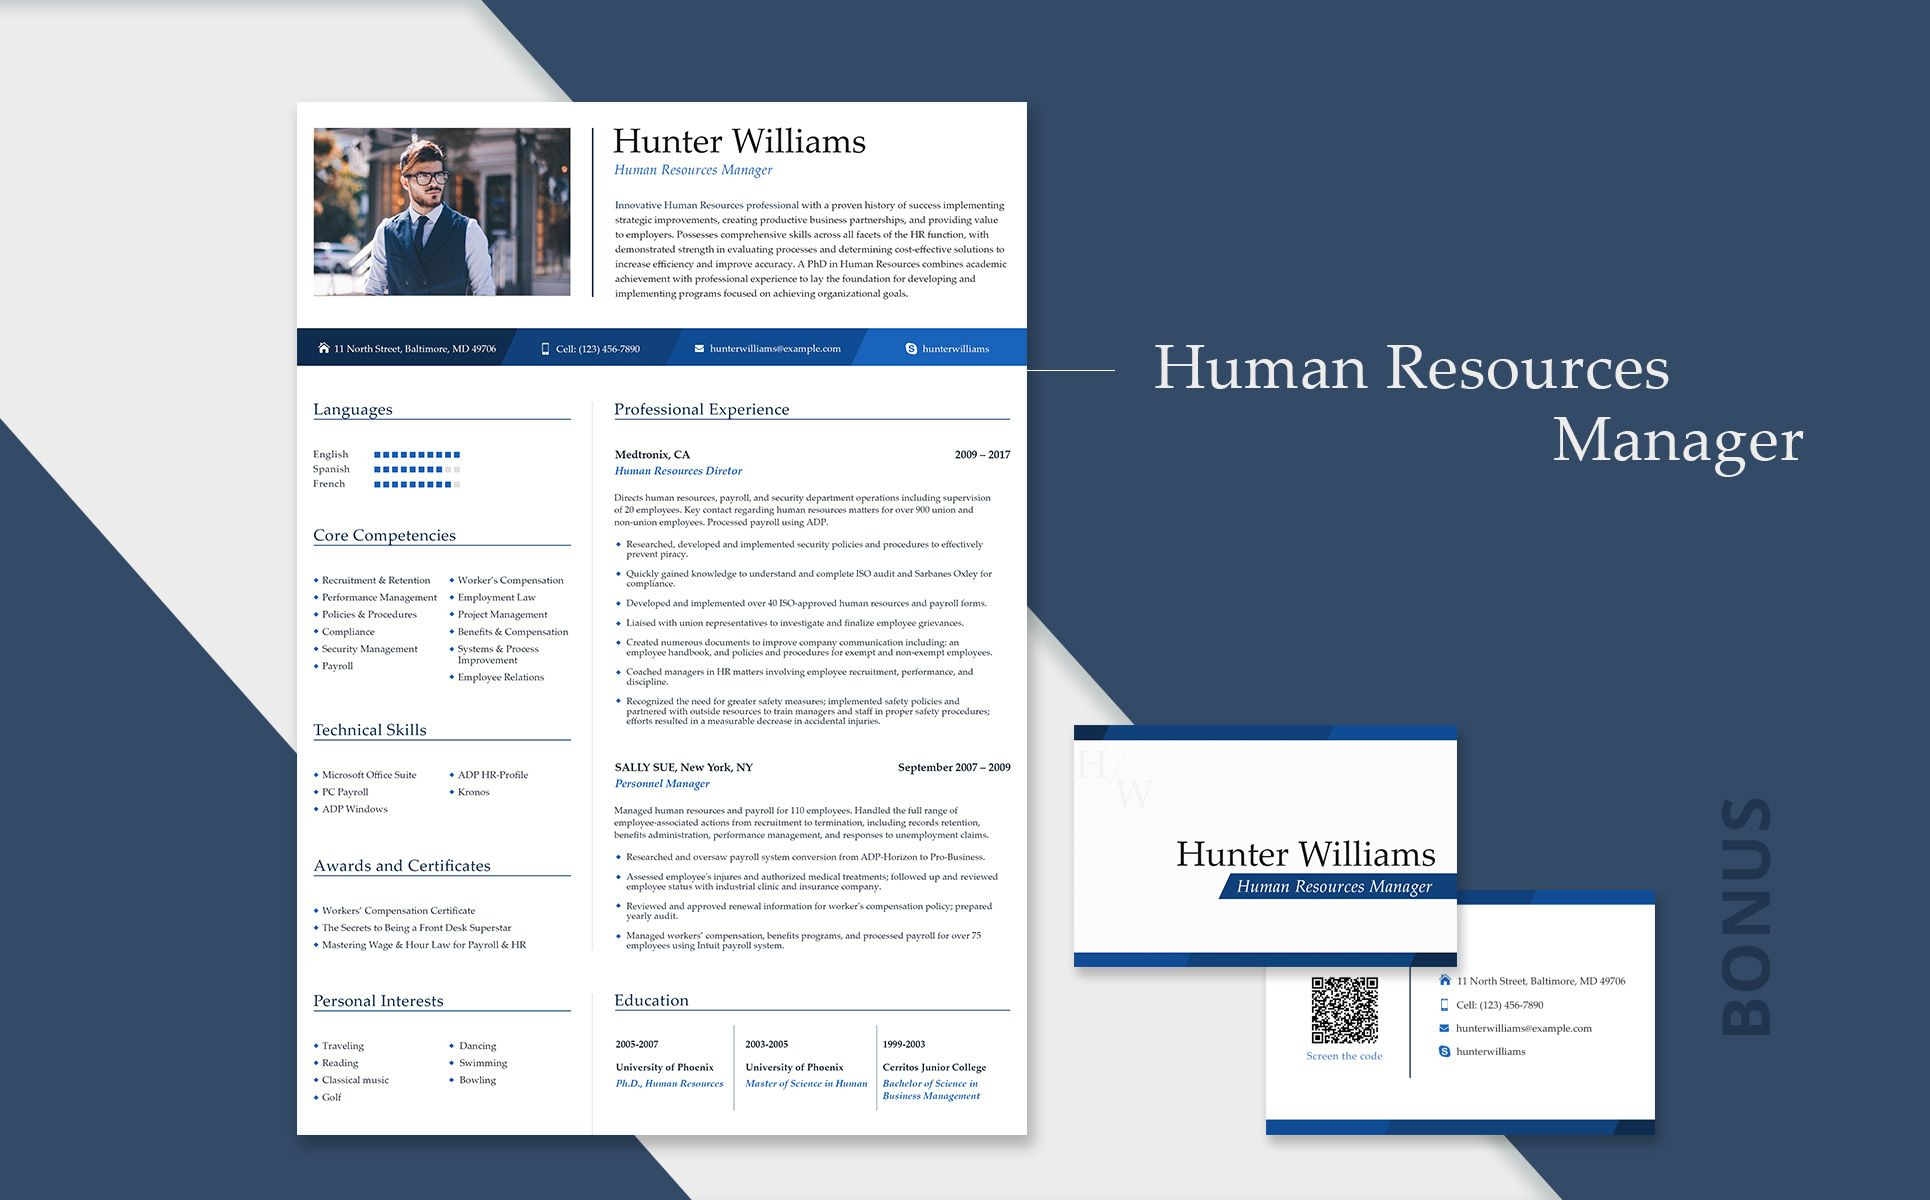 Hunter Williams Human Resources Manager Resume Template